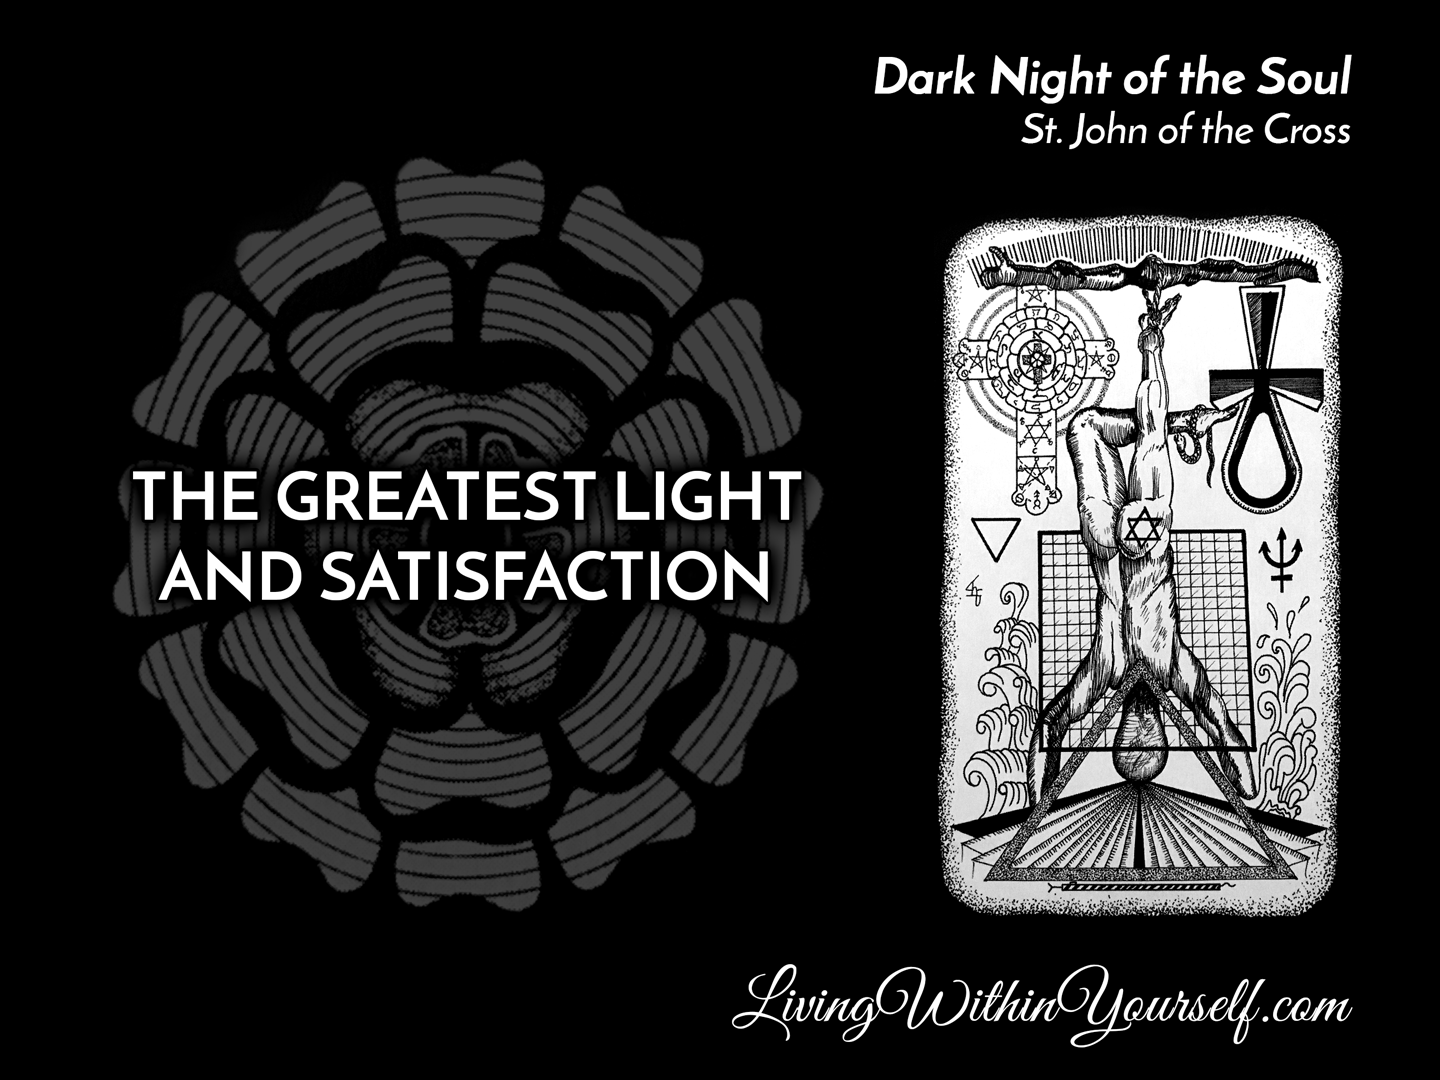 The Dark Night of the Soul - The Greatest Light and Satisfaction